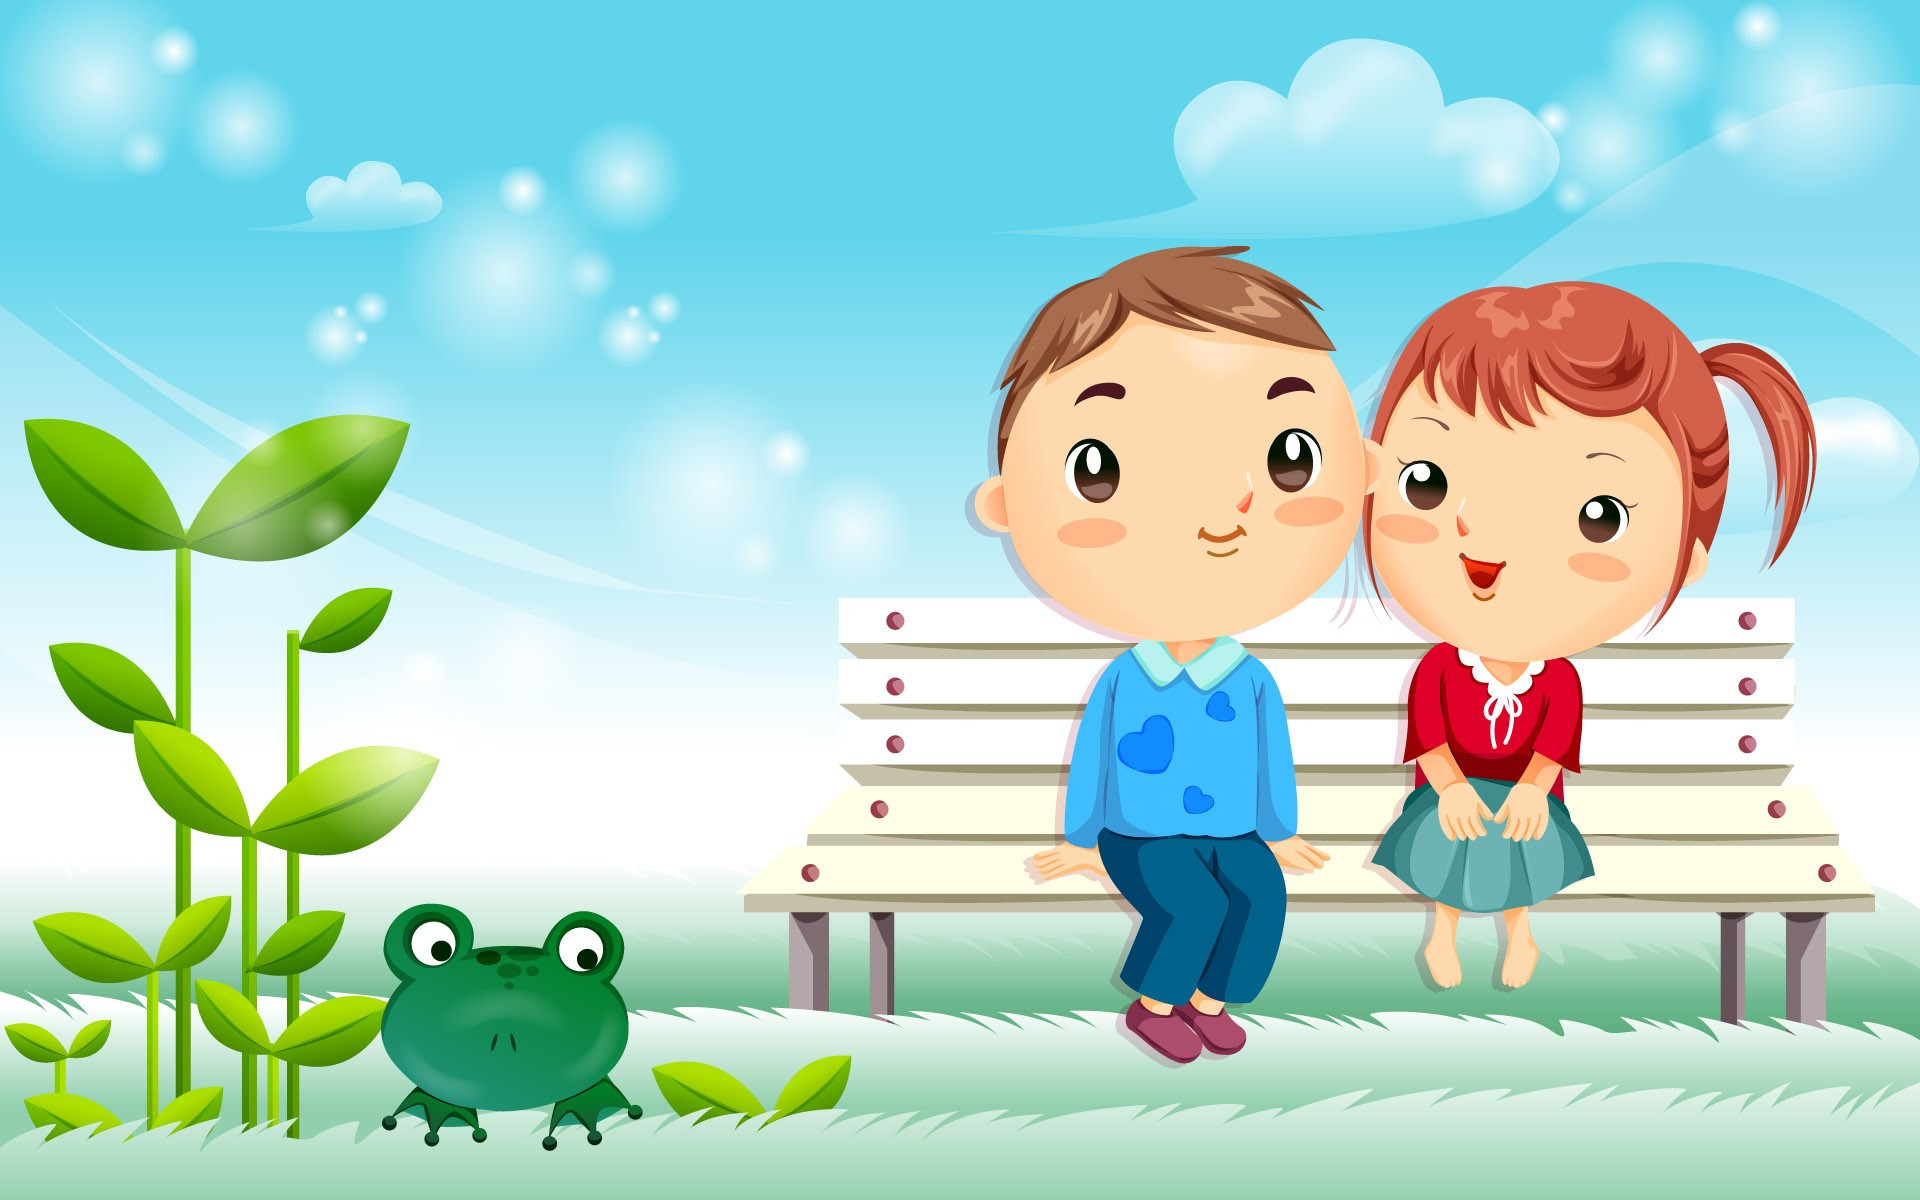 Res: 1920x1200, Cute Love Couple Wallpaper #7014599 - HD Wallpapers